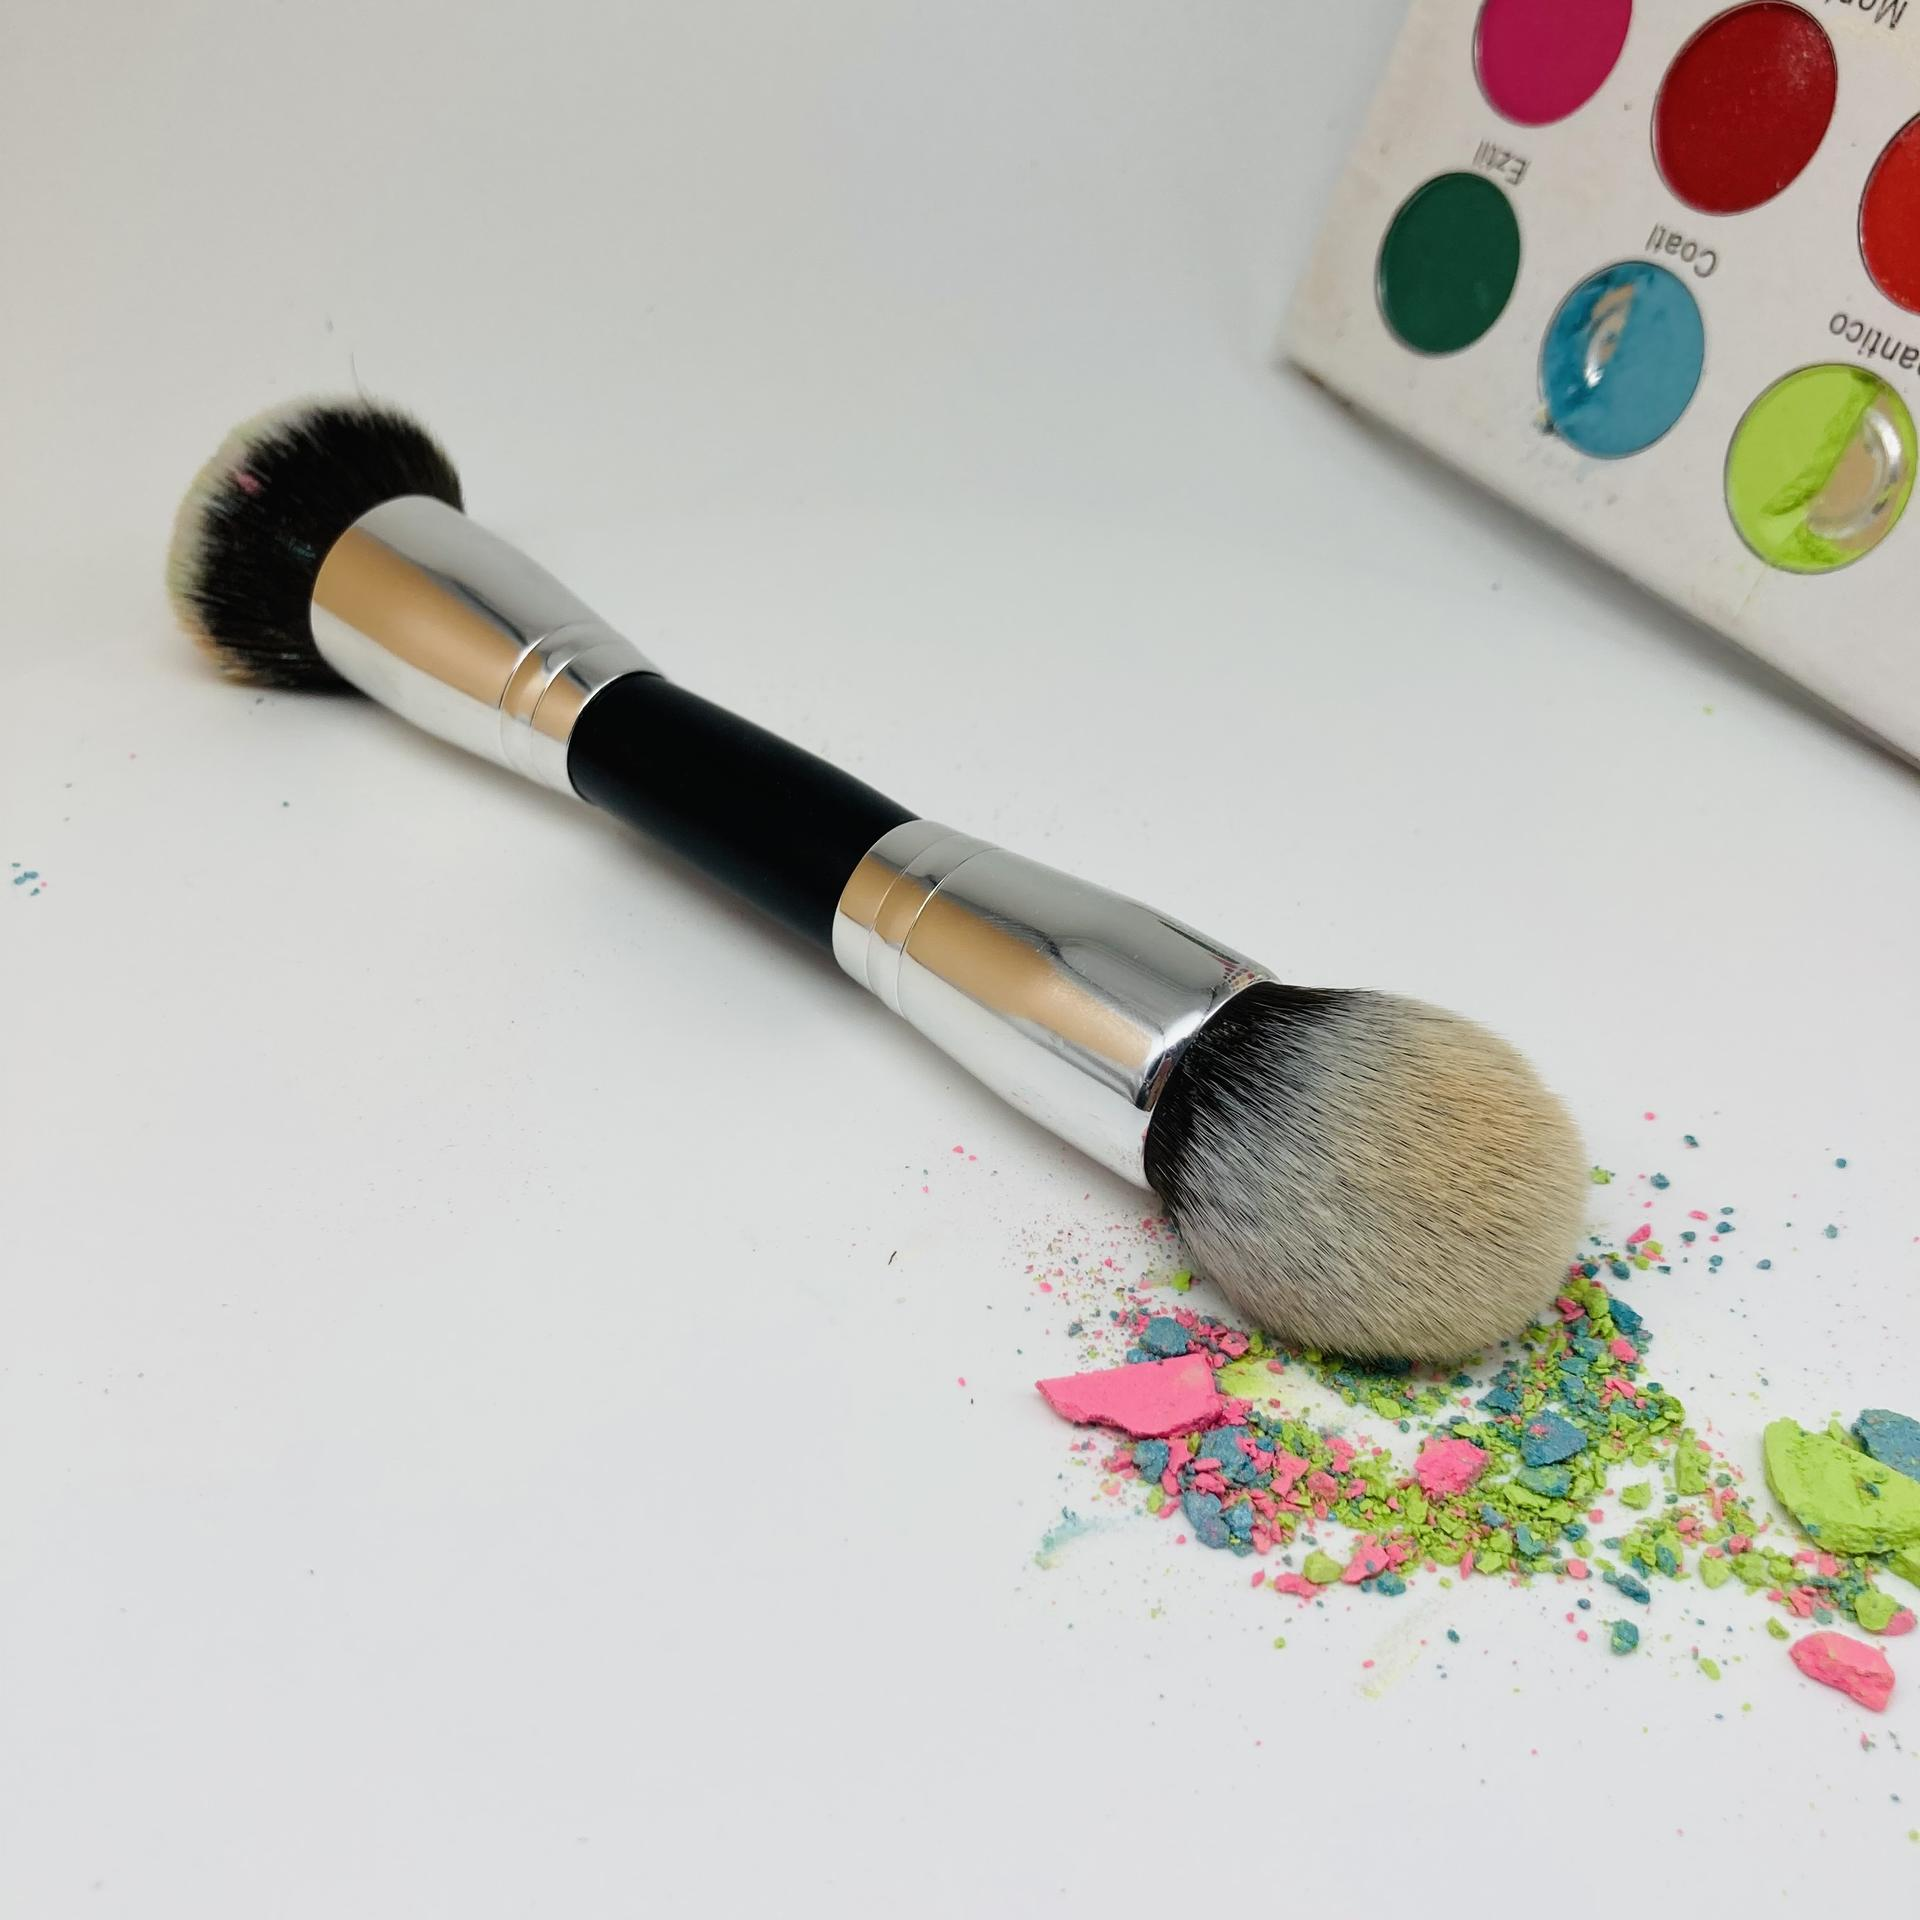 Synthetic hair private label beauty tools accessories petal shape foundation makeup kabuki brush